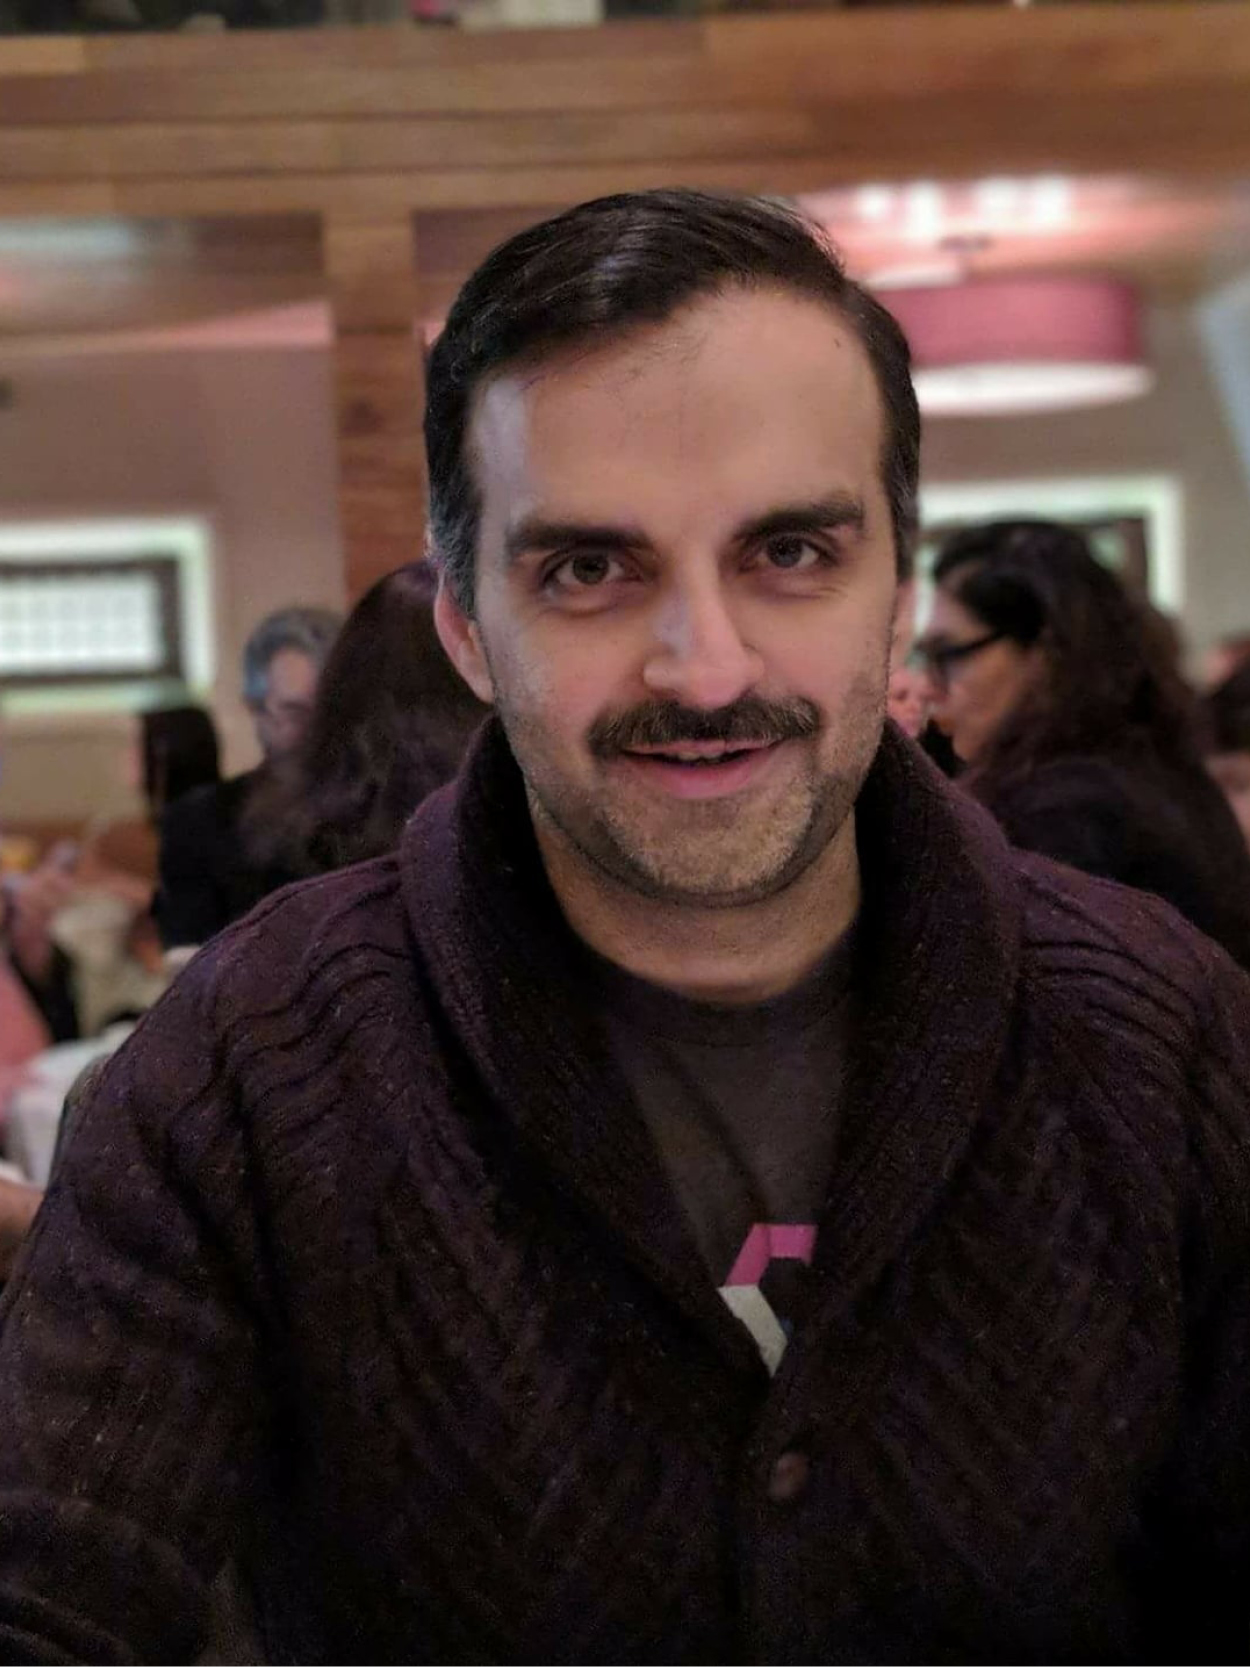 About Vidur - Job DescriptionSenior Vice President, Strategy & Value CreationHobbiesTheater (drama and Broadway musicals), cooking and baking, running, travel, museums and exhibits.Fun FactVidur officiated the wedding of one of his closest friends on an island off of Maine.